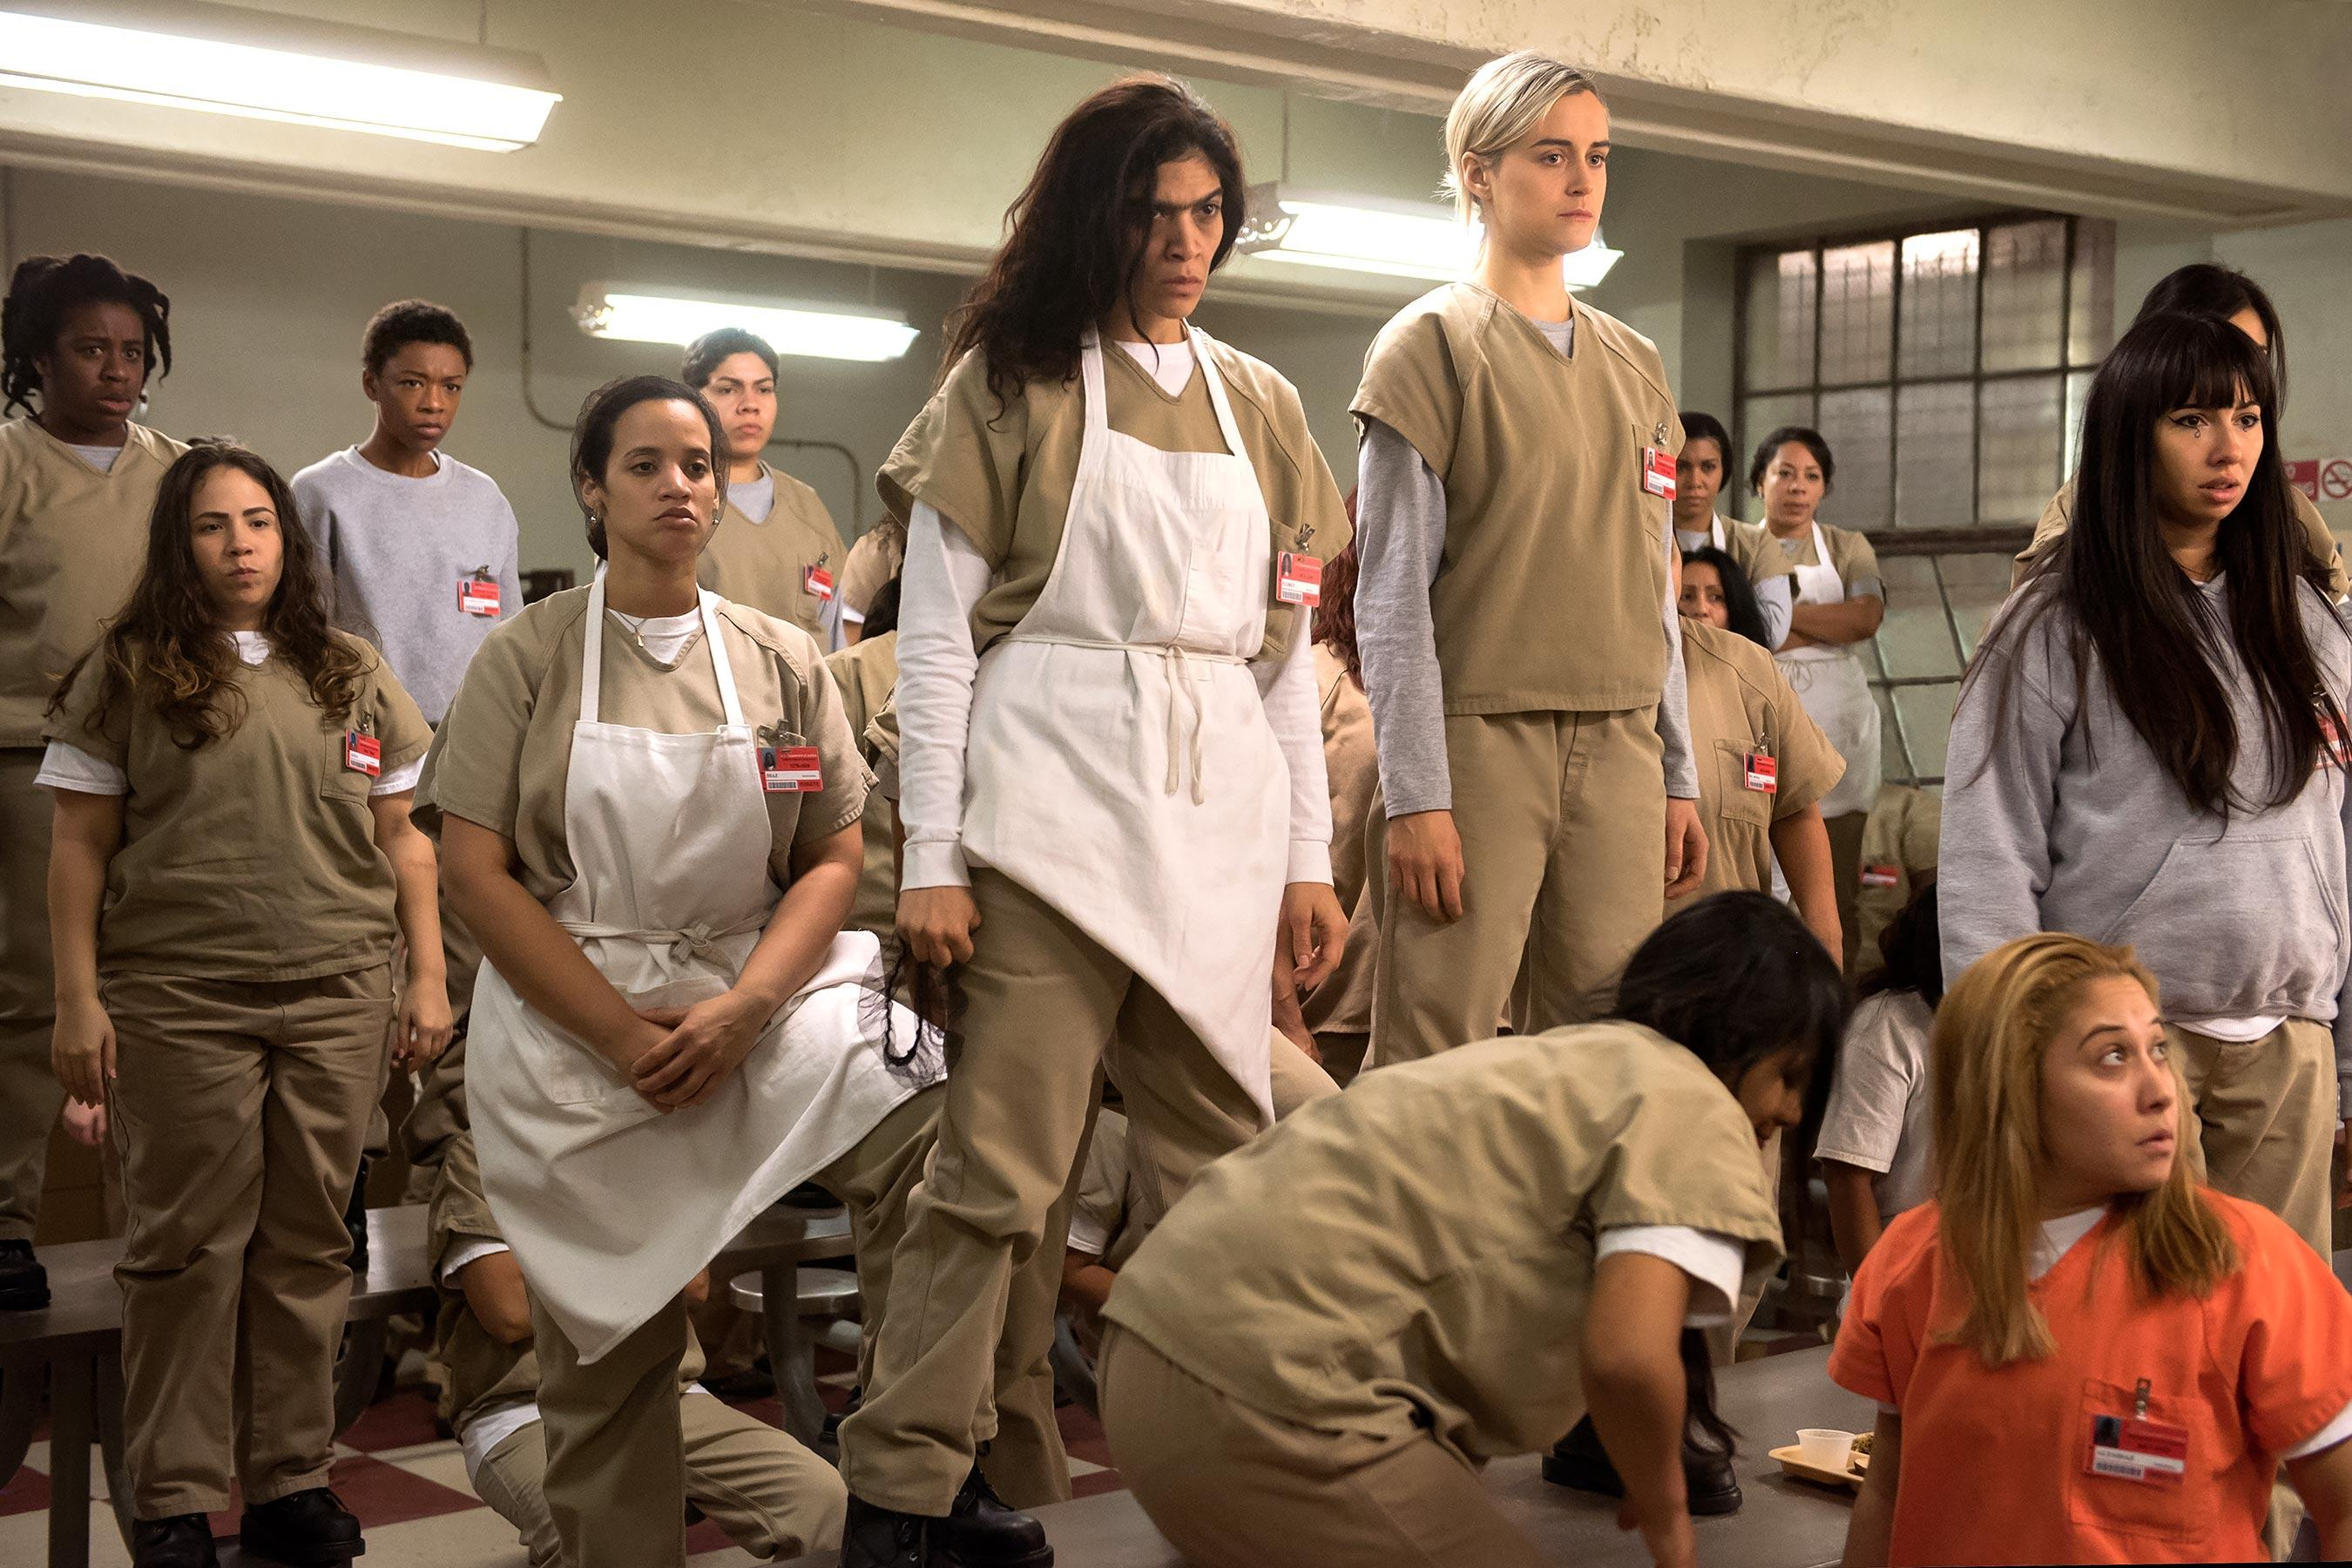 orange is the new black producer dating cast member Orange is the new black season 6 cast it has been reported that season 6 of the netflix show will bring in new some cast members although no names have been announced, with the way season 5 ended, we might be introduced to new inmates from another prison.